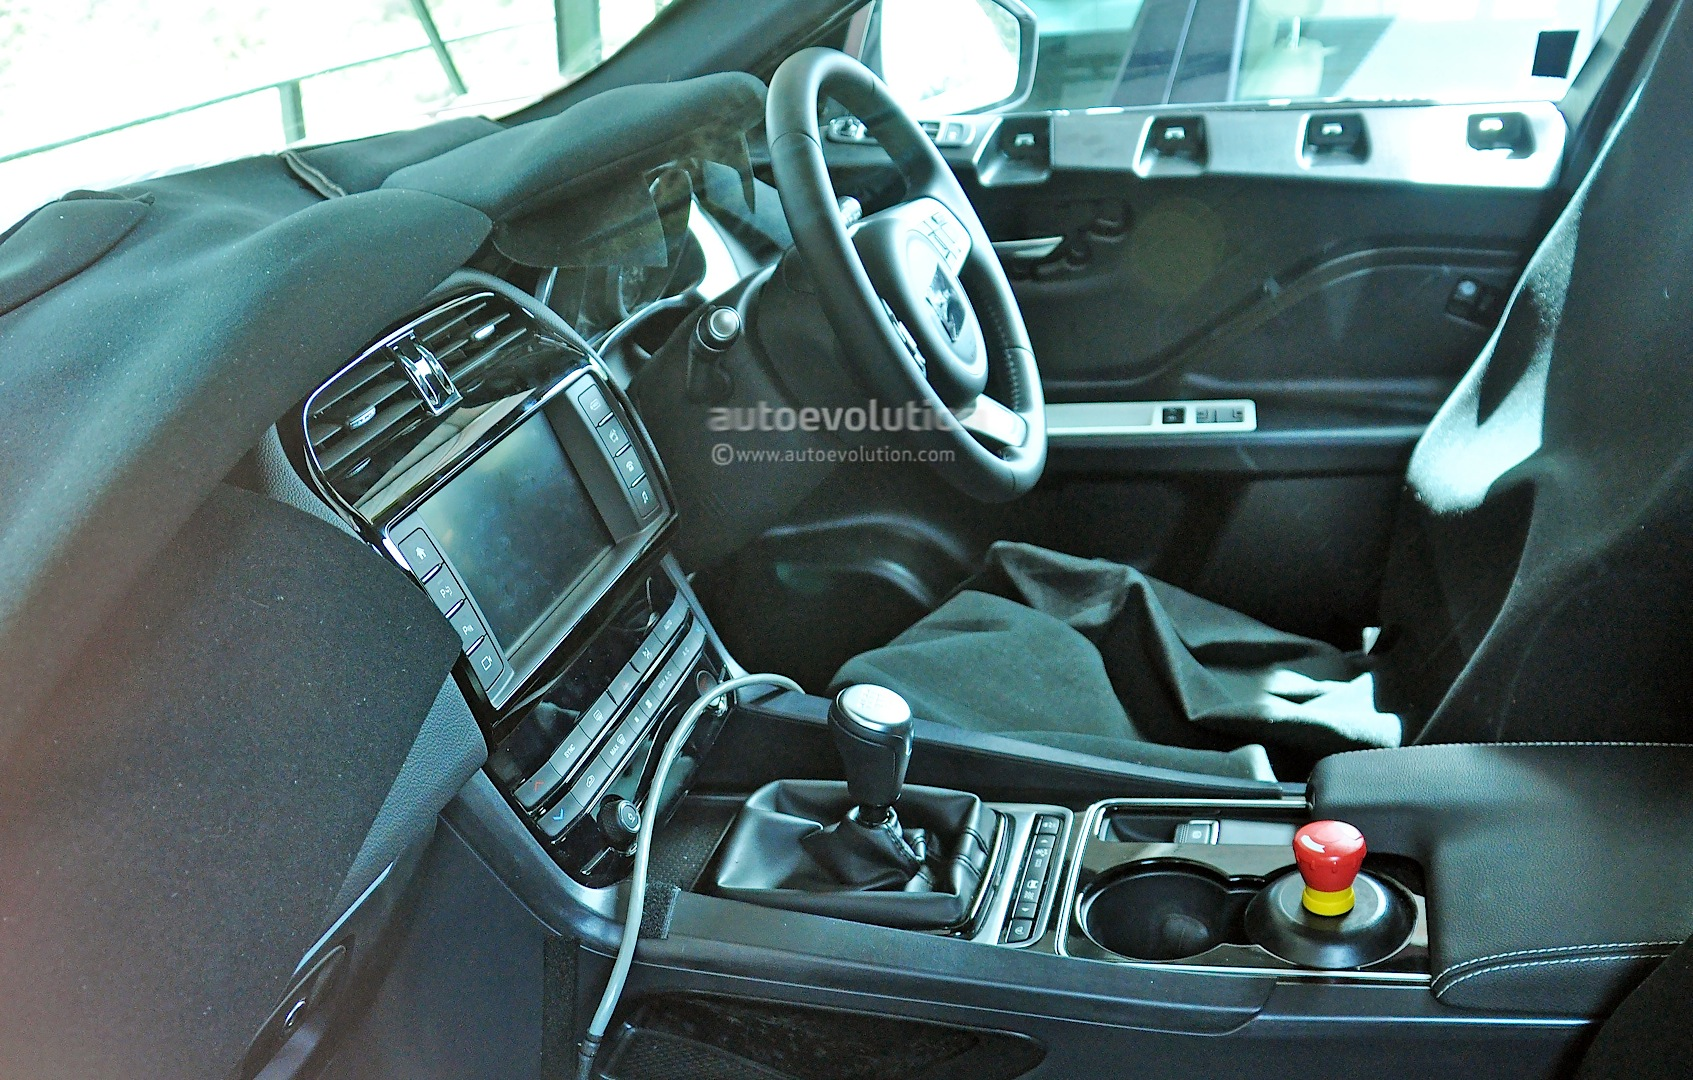 First Jaguar F Pace Interior Spy Photos Show Manual Gearbox Xf